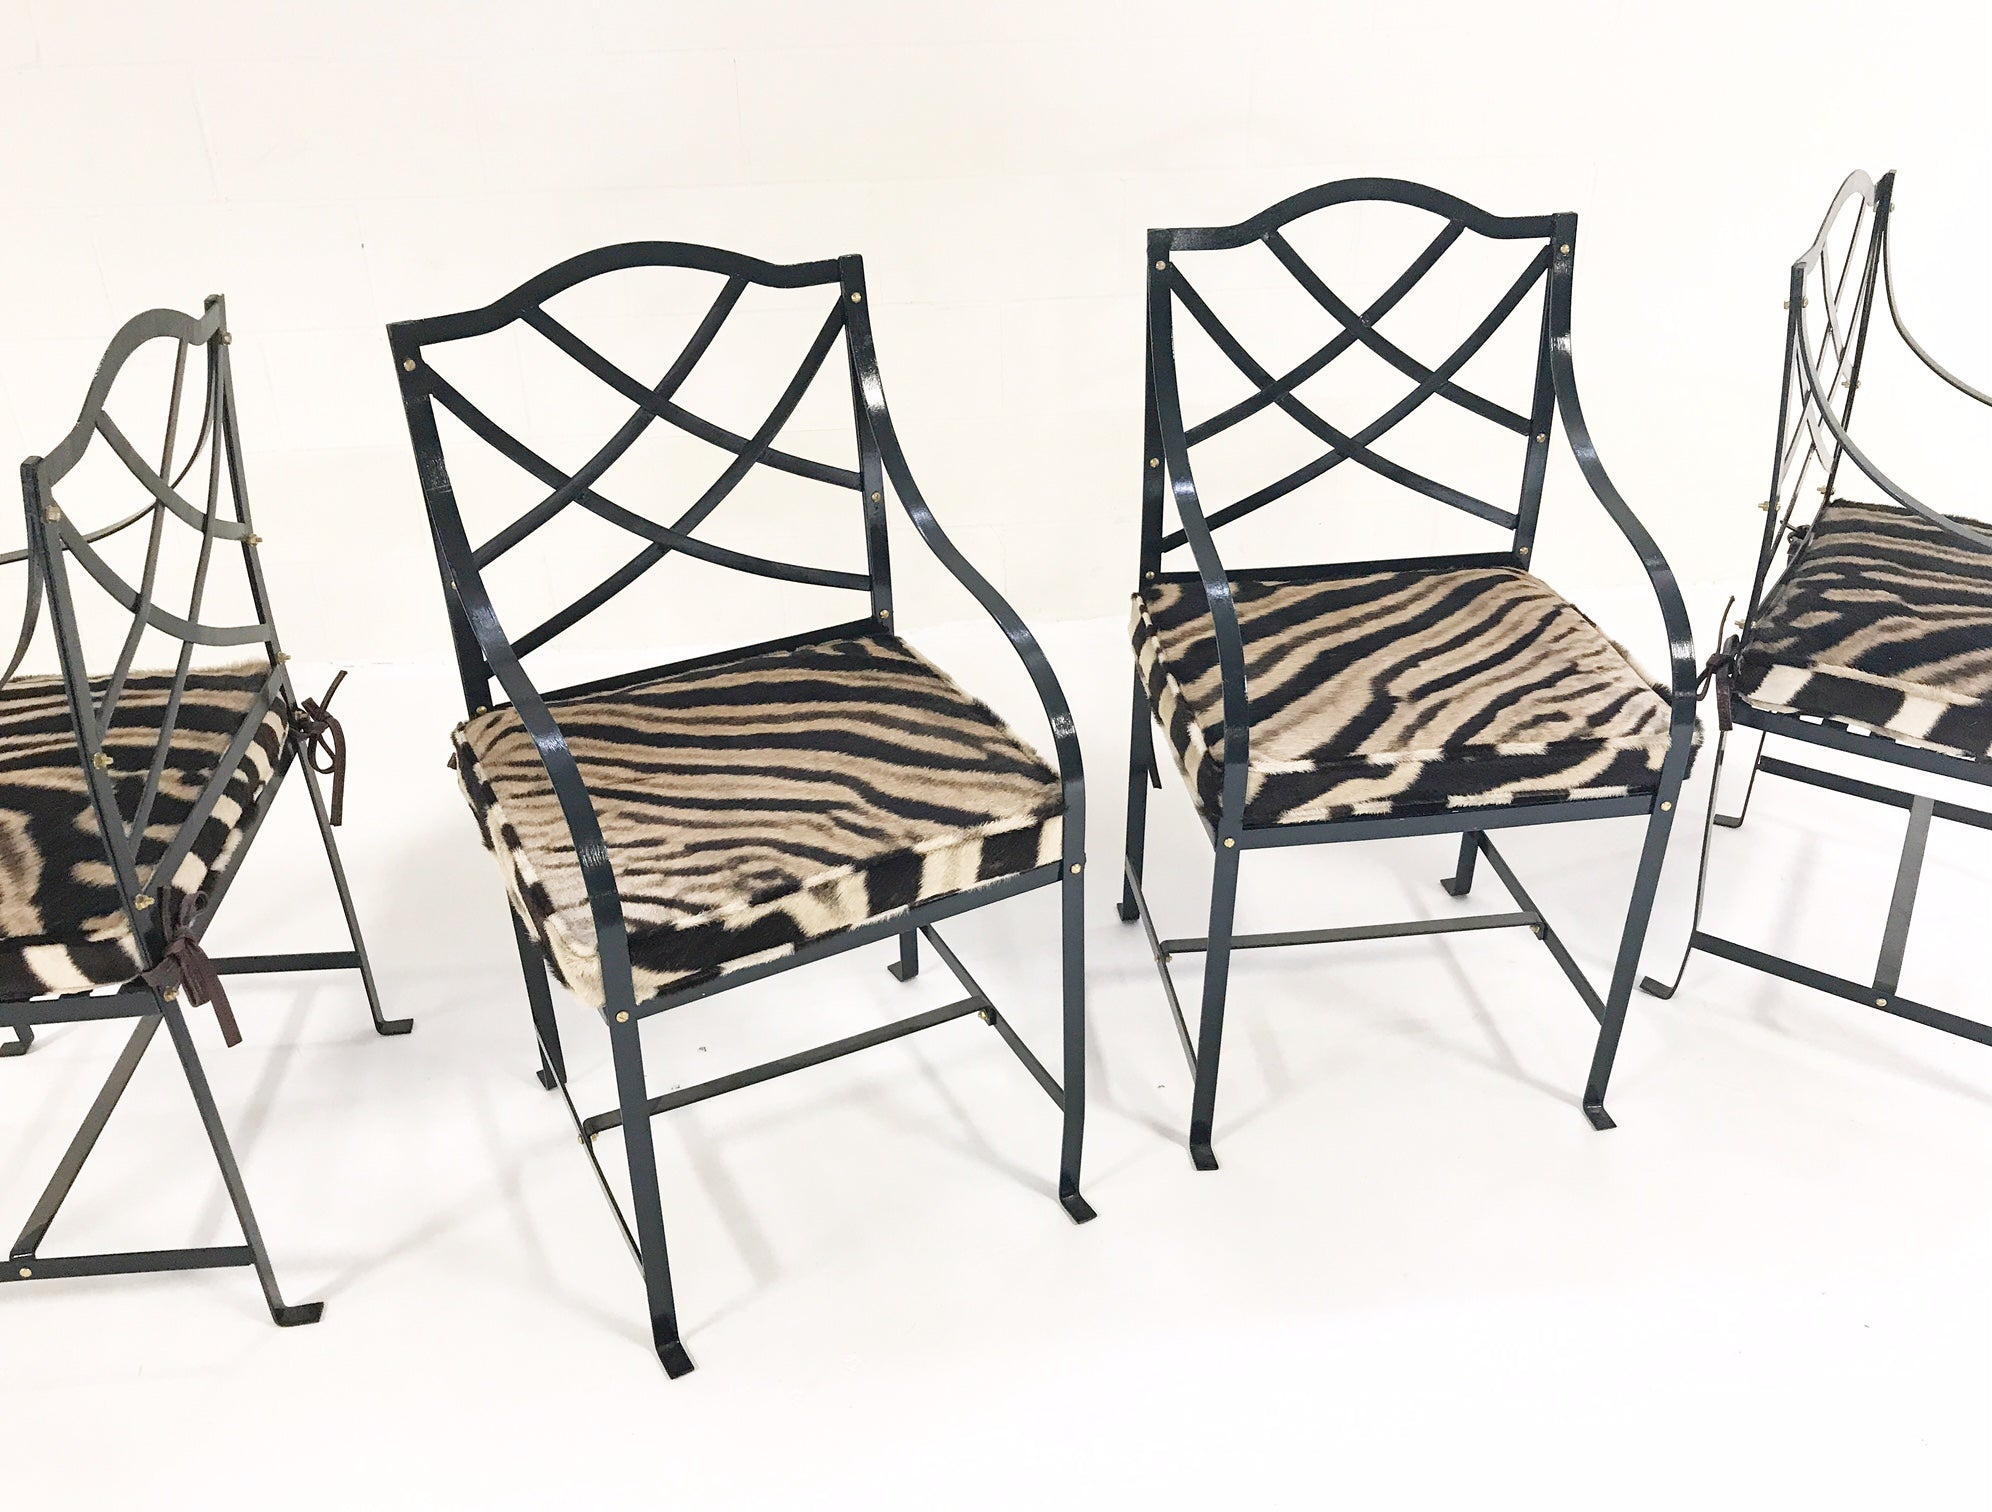 Iron Garden Chairs Painted Farrow & Ball Blue Black with Custom Zebra Hide  Cushions, set of 4